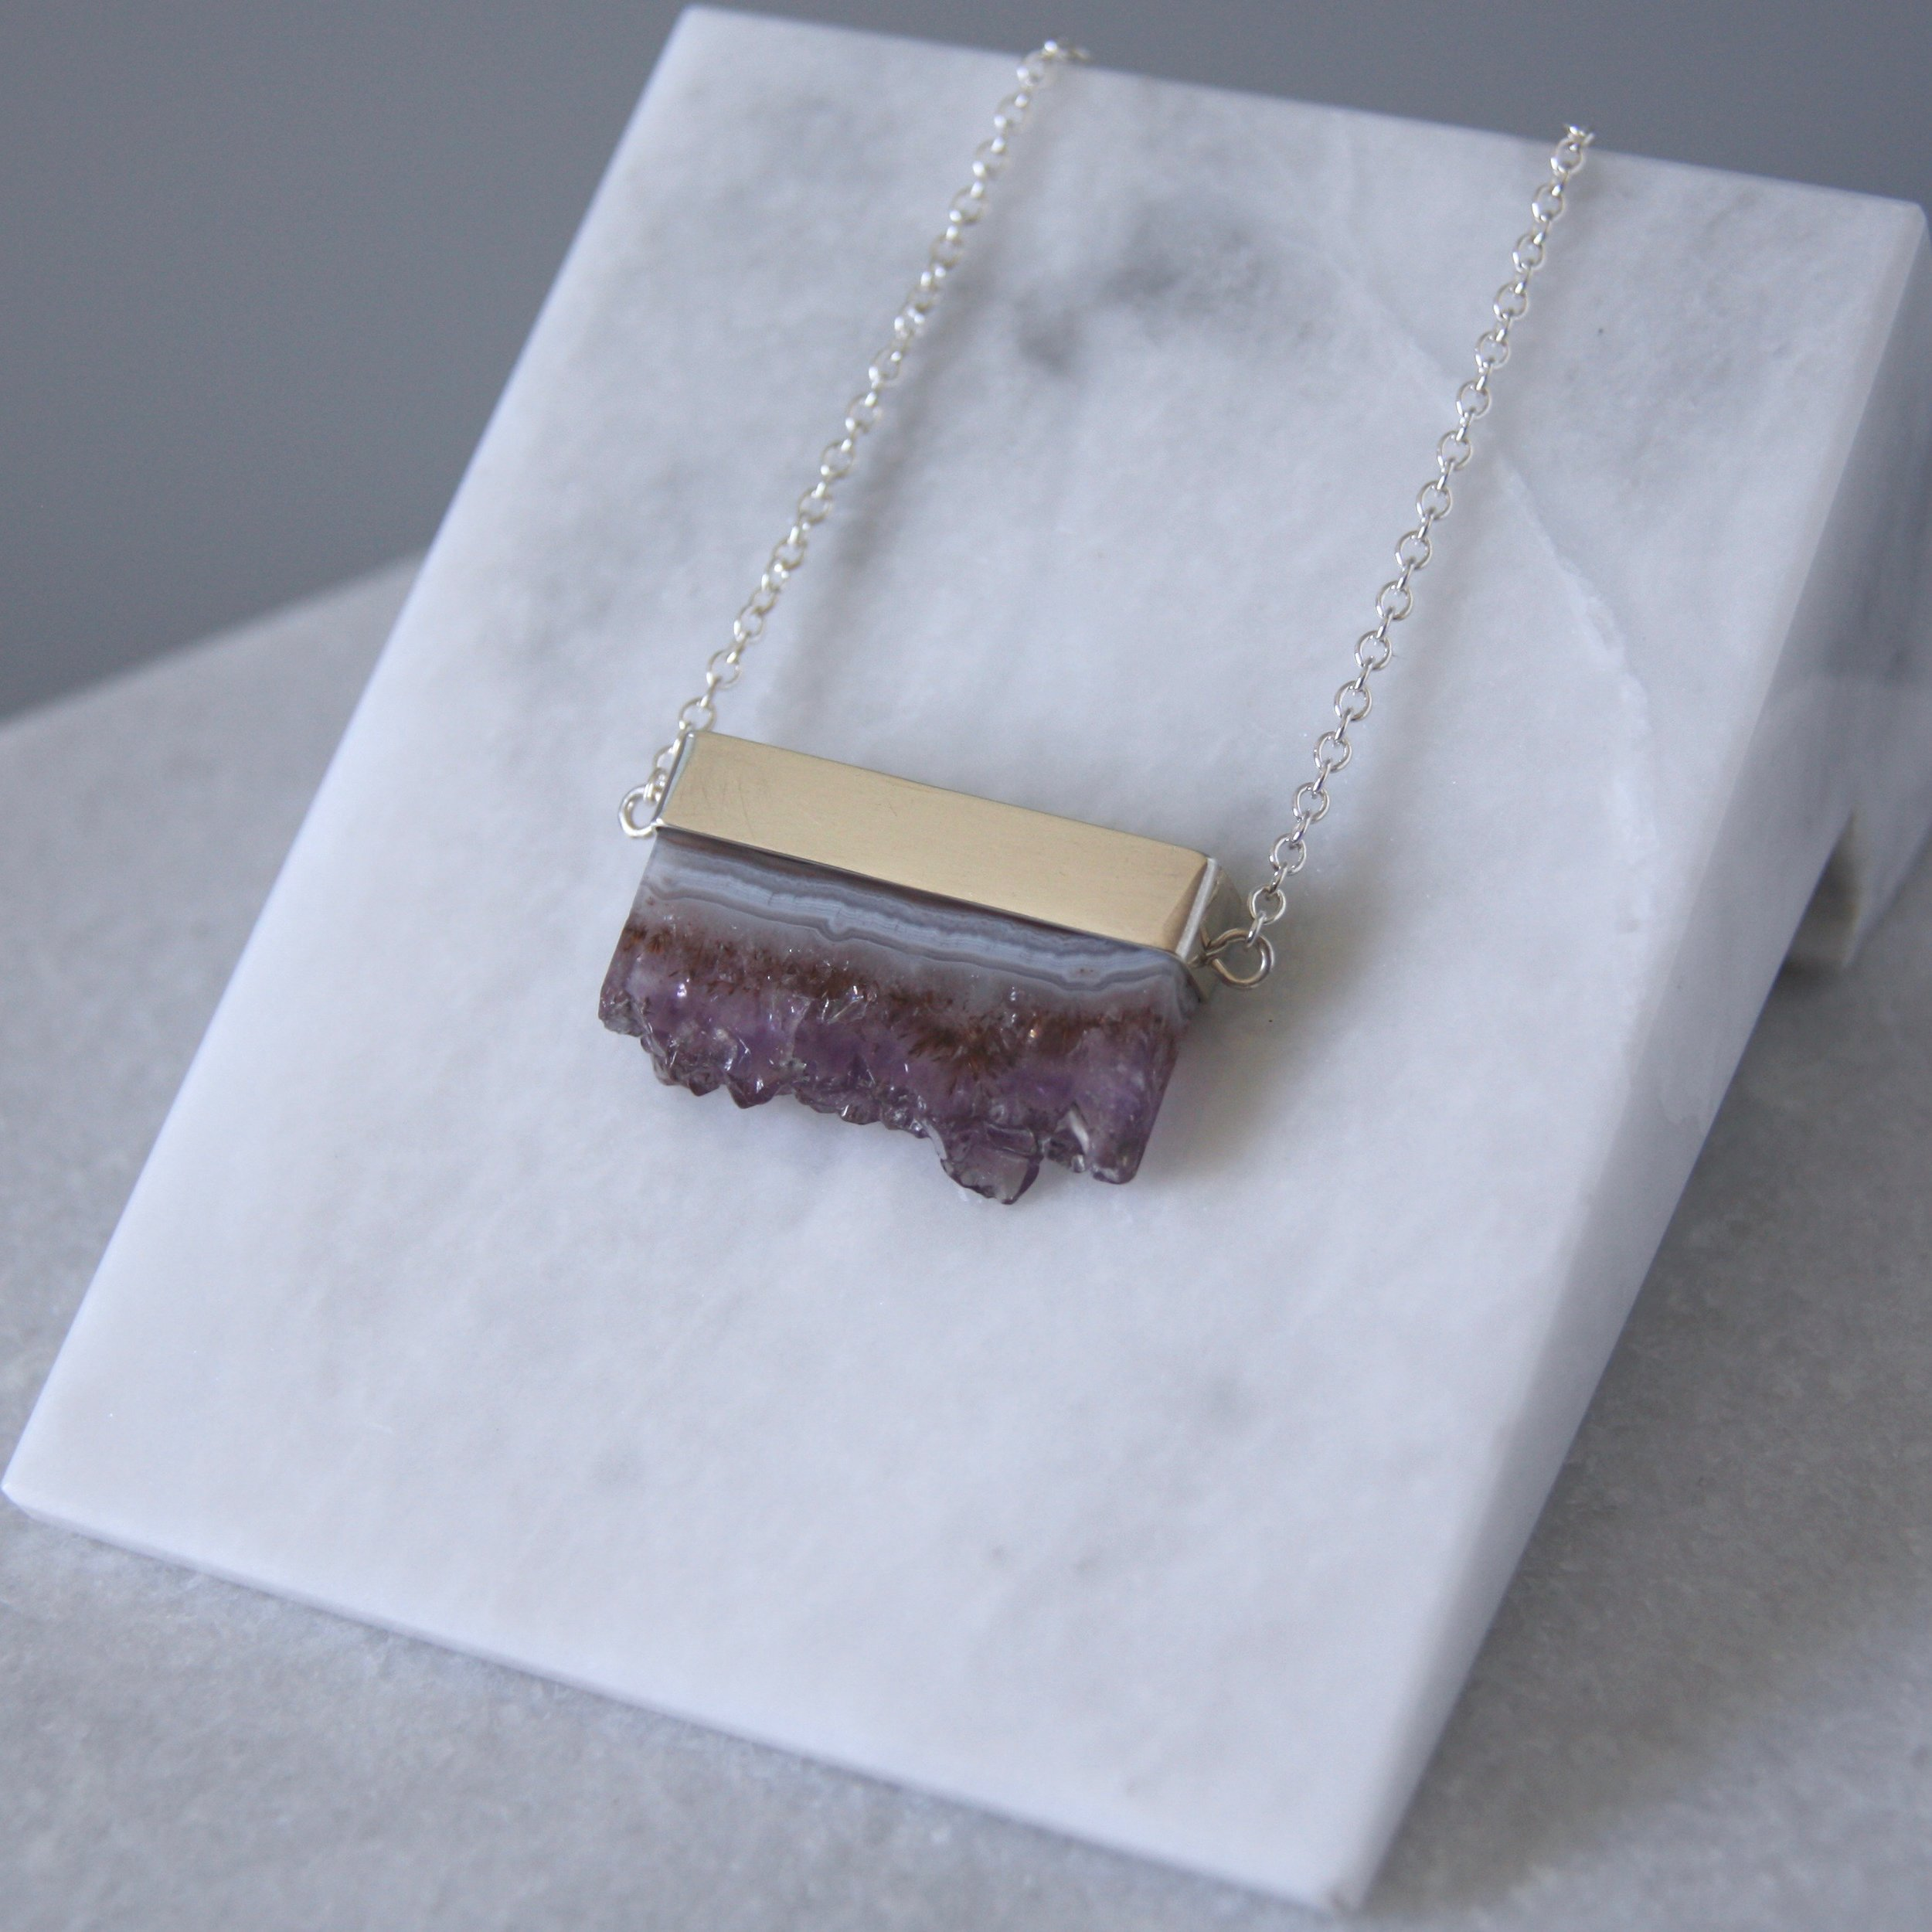 Modern Mineral Collection - Crystals and clean lines